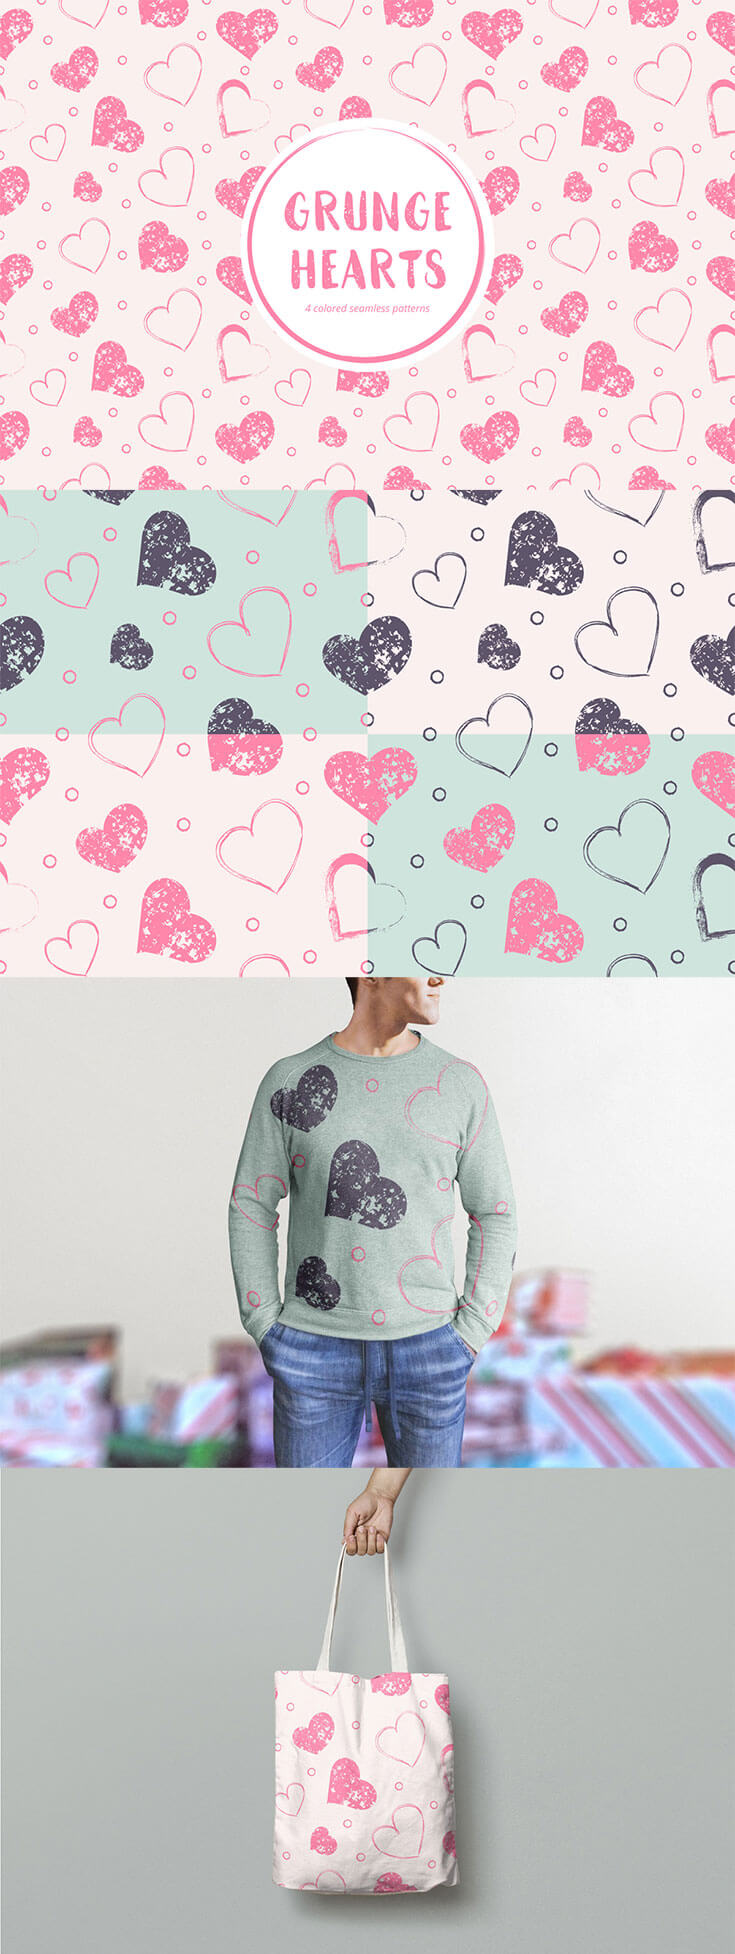 Free Grunge #Hearts #Seamless #Pattern Pack can be applied to many things. They will look stylish. This can be a variety of clothing, household items and home textiles, stationery and accessories for gadgets. The Enumeration can be very long. The whole set you can easily use for commercial or personal purposes.